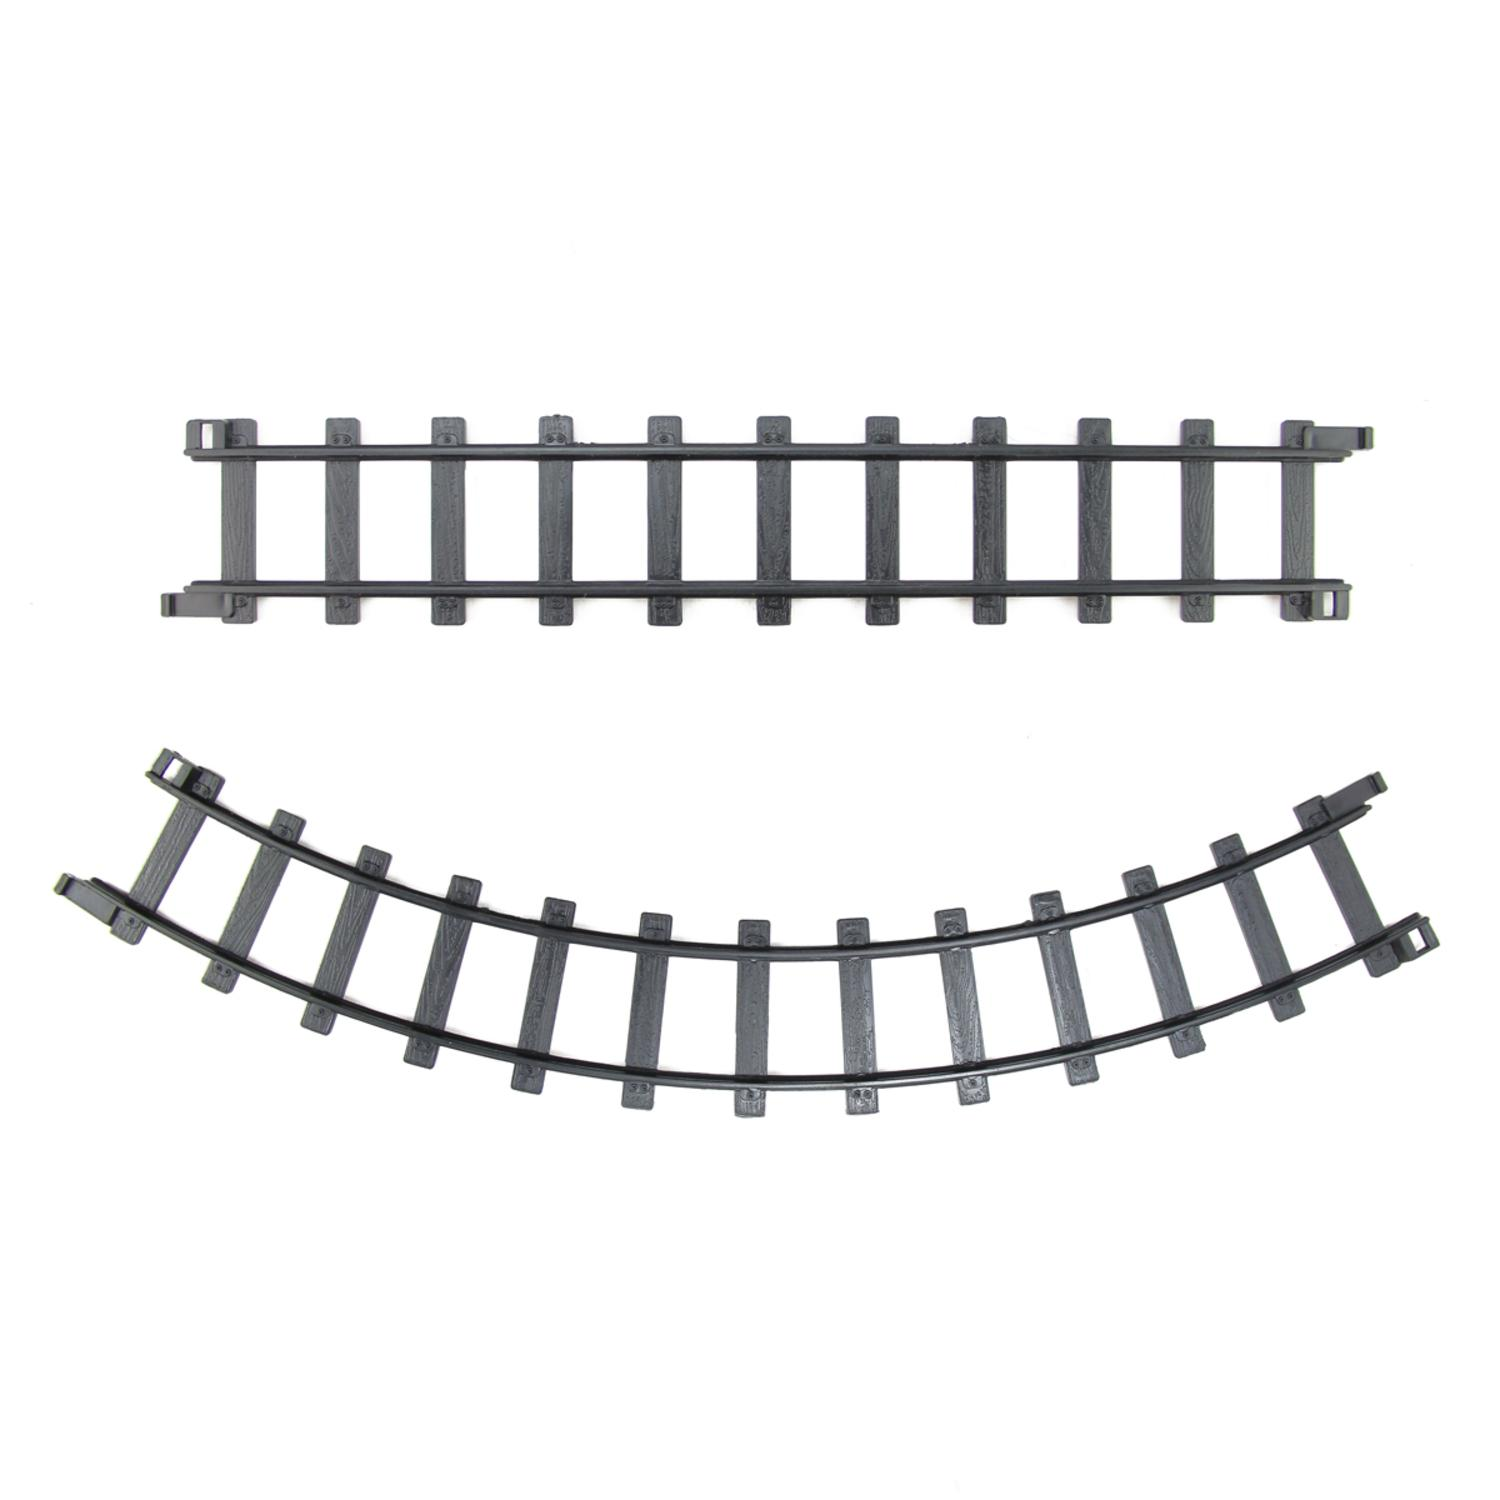 "Pack of 12 Black Replacement Train Set Track Pieces - 2"" x 12"""